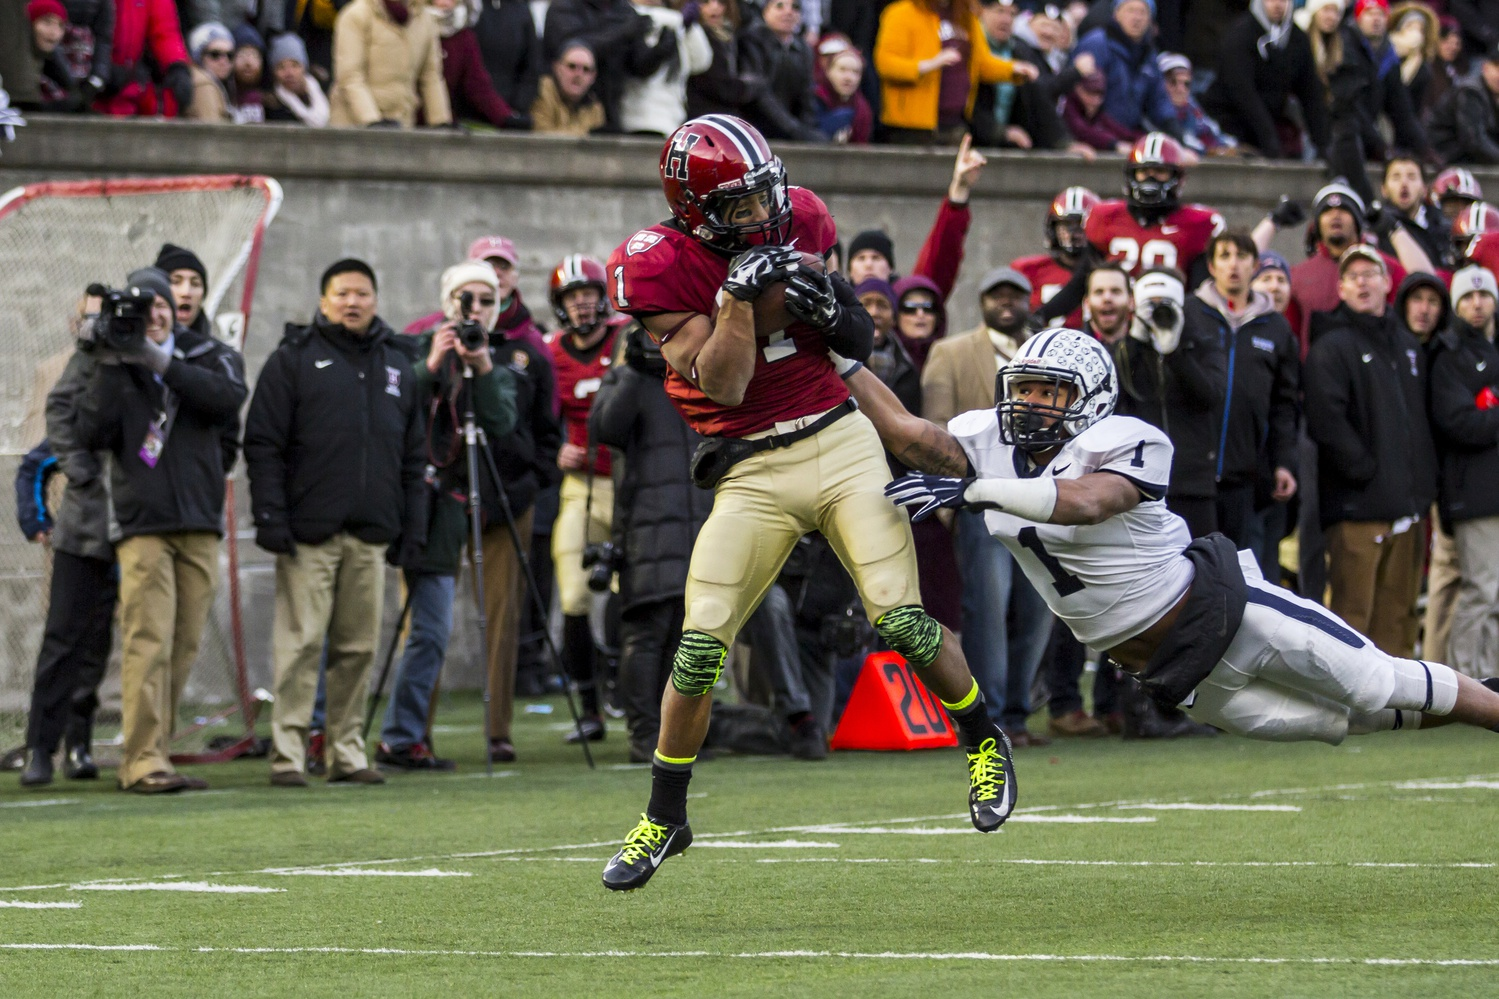 Andrew Fischer catches the game-winning score of the Harvard-Yale game on Nov. 22. The Crimson beat the Bulldogs, 31-24, in a thriller at Harvard Stadium that ensured sole possession of the Ivy title for Harvard.